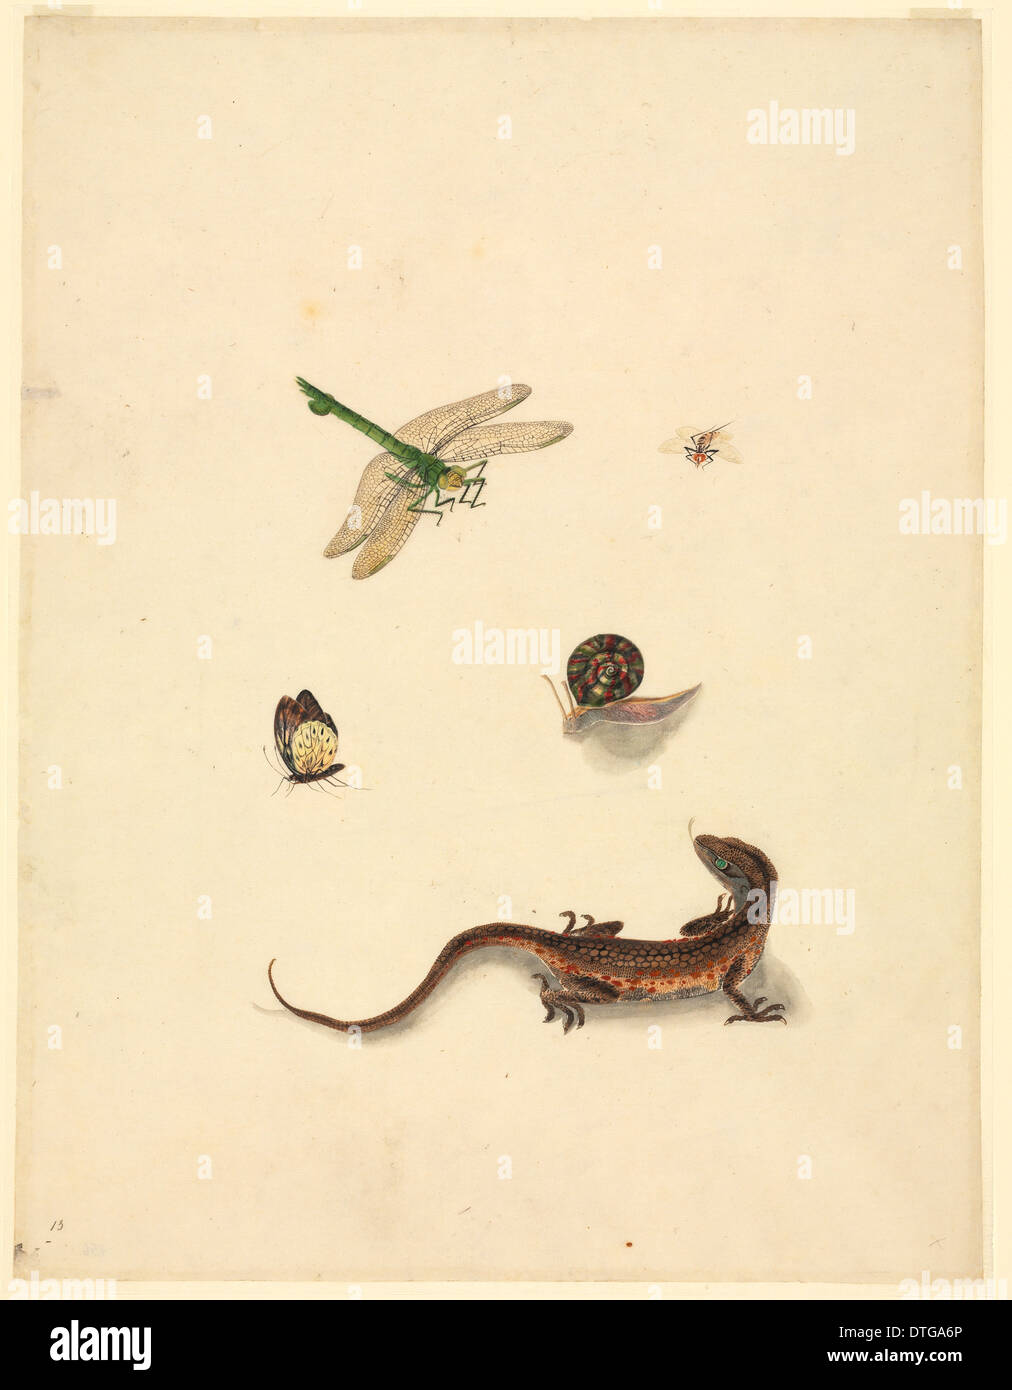 Plate 101 from the John Reeves Collection (Zoology) - Stock Image